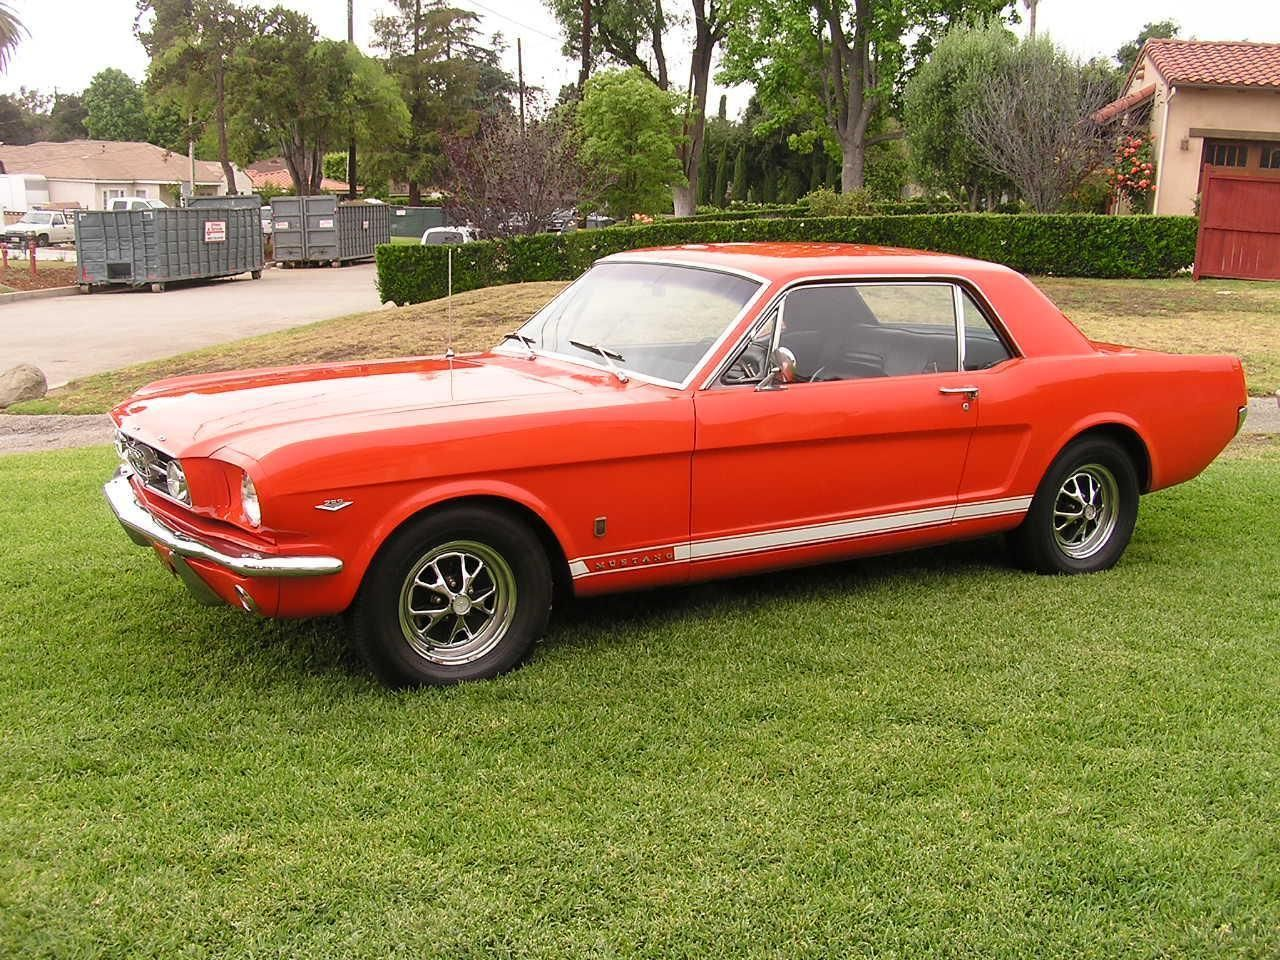 Ebay 1965 ford mustang gt 1965 mustang gt coupe real california black plate car fordmustang ford